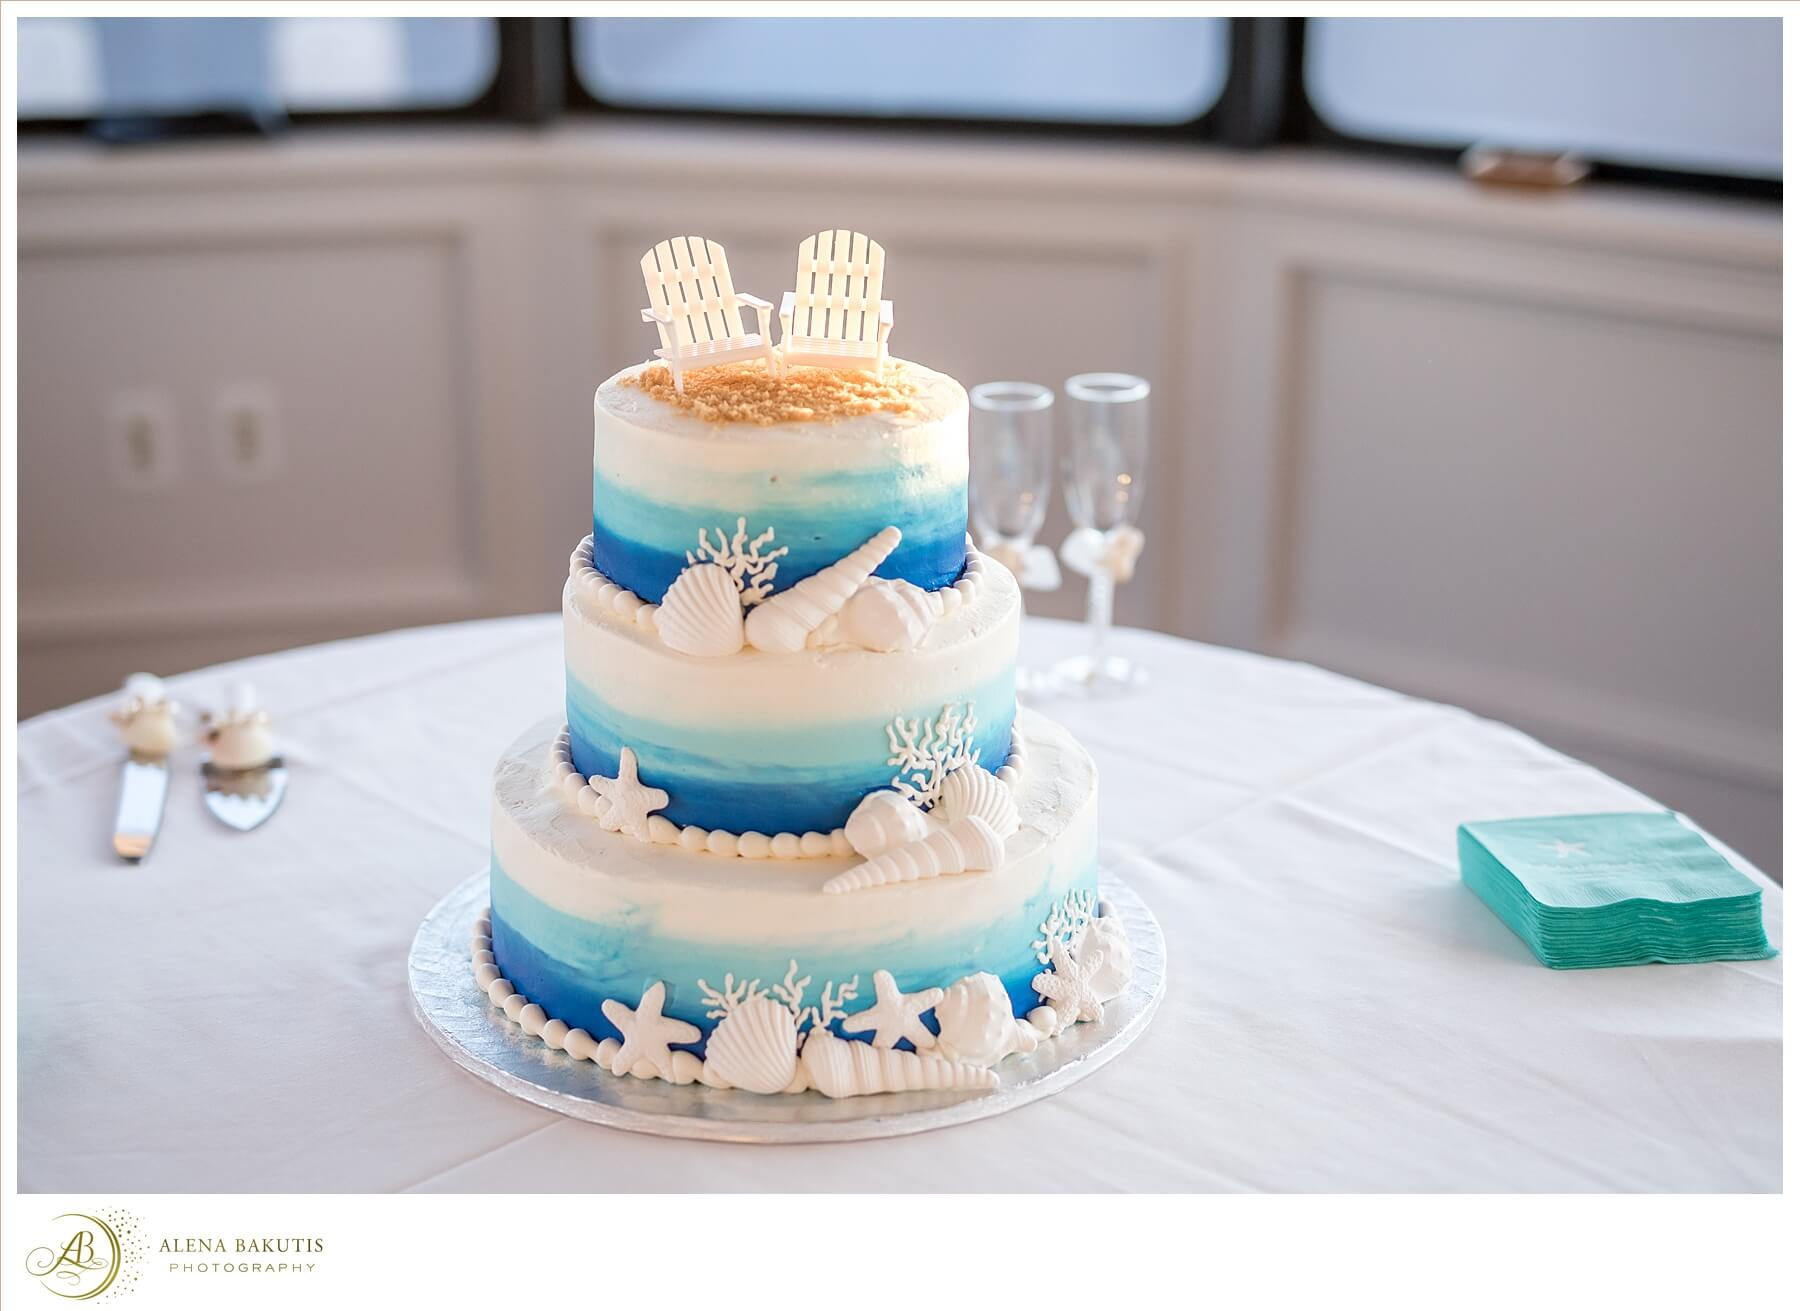 destin wedding cakes Alena Bakutis Photography - Amber Brandon-490_WEB